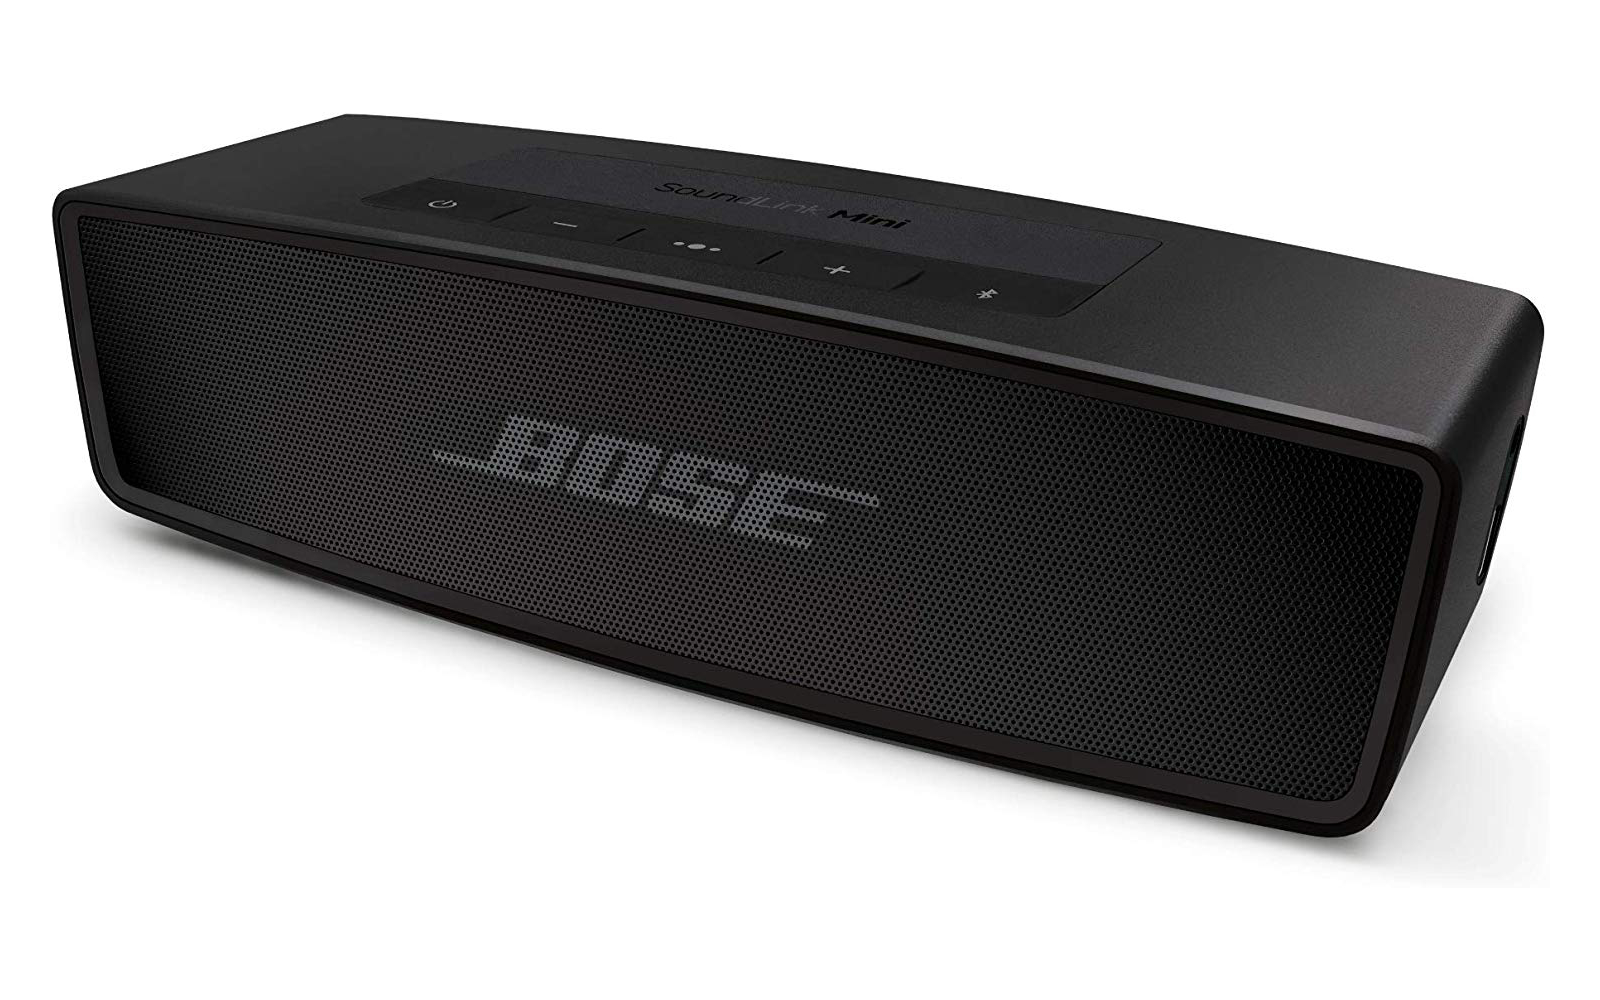 Bose-SoundLink-Mini-2-Special-Edition-1.jpg